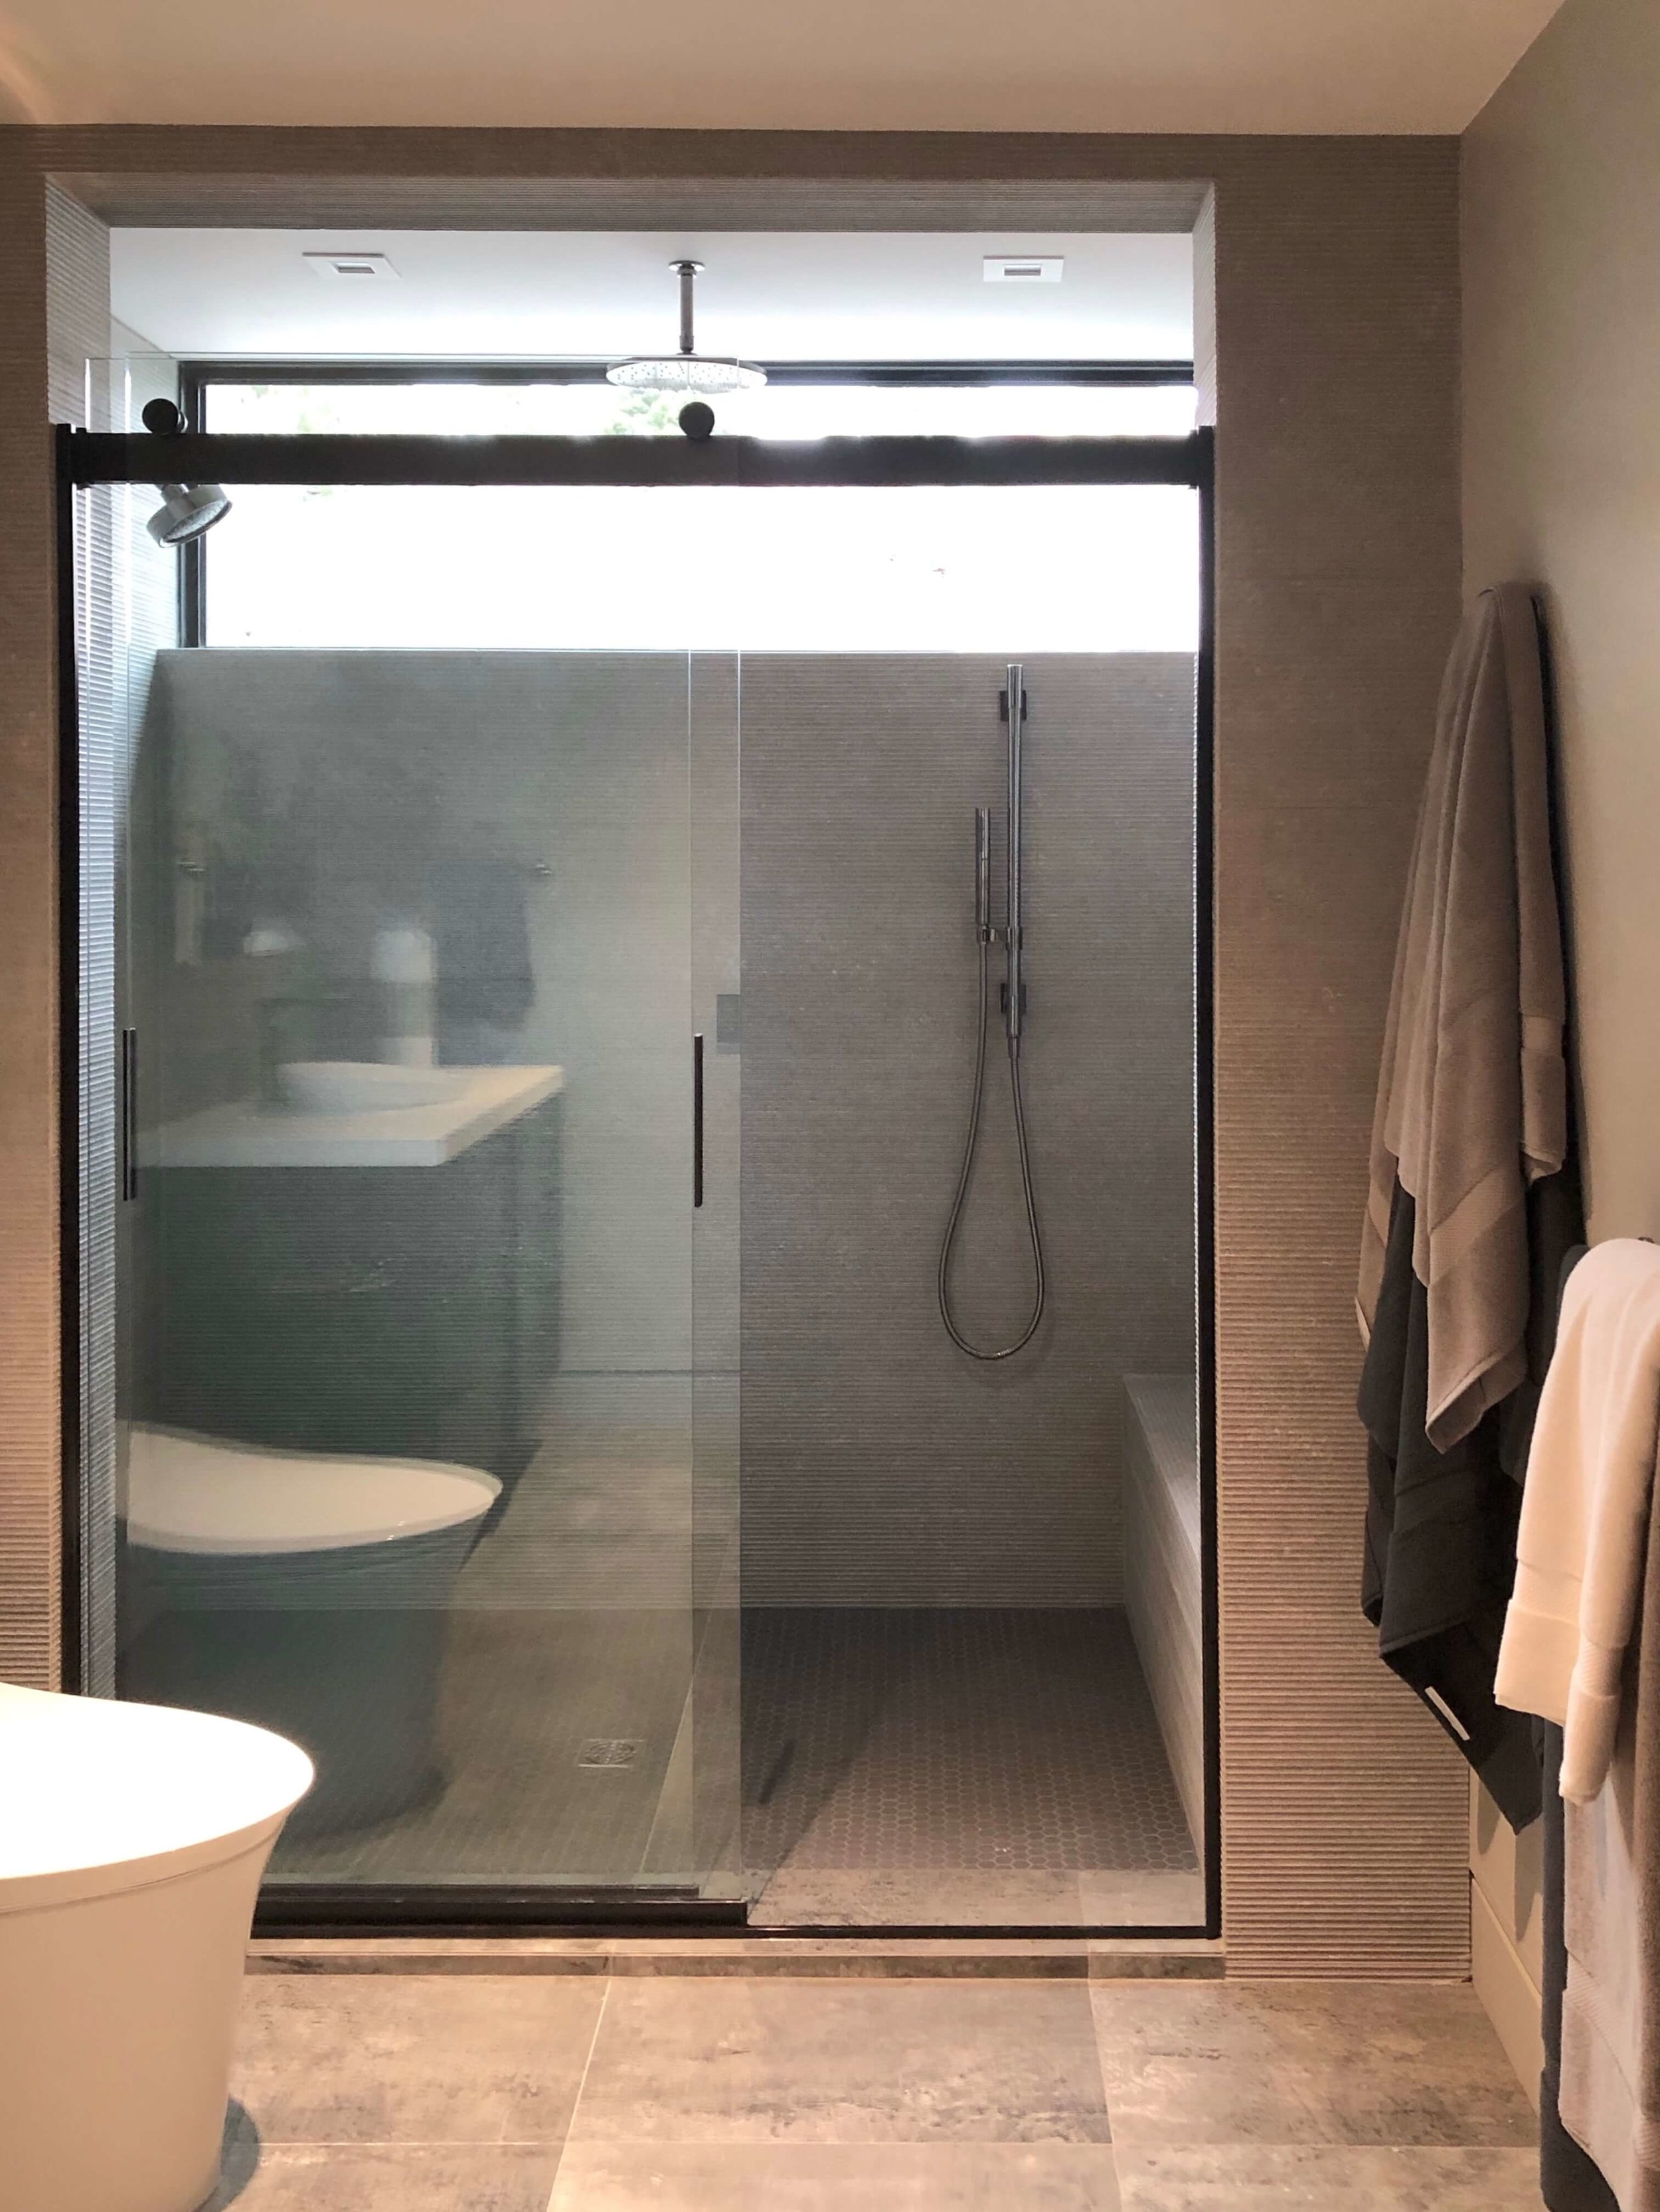 Guest bathroom shower in The New American Remodel 2019. #hometour #shower #contemporaryhome